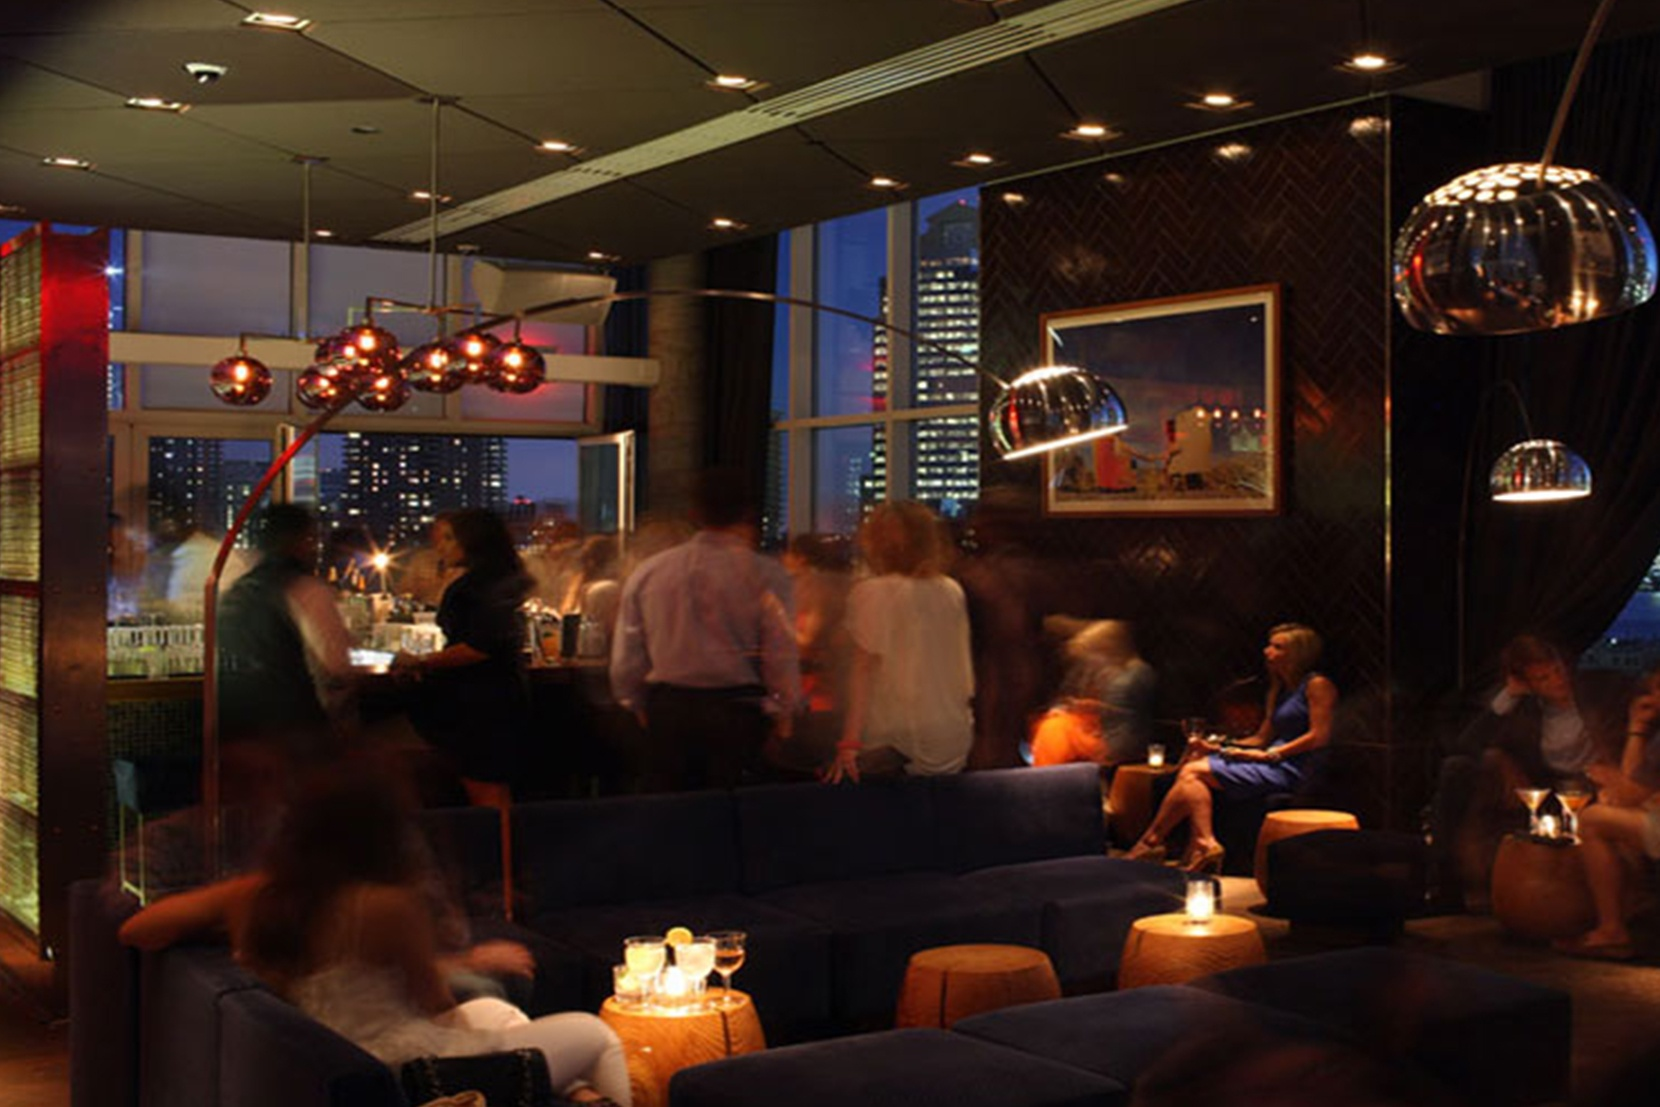 Modern-Bar-Lighting-Jimmy-Soho-Quill-Chandelier.jpg